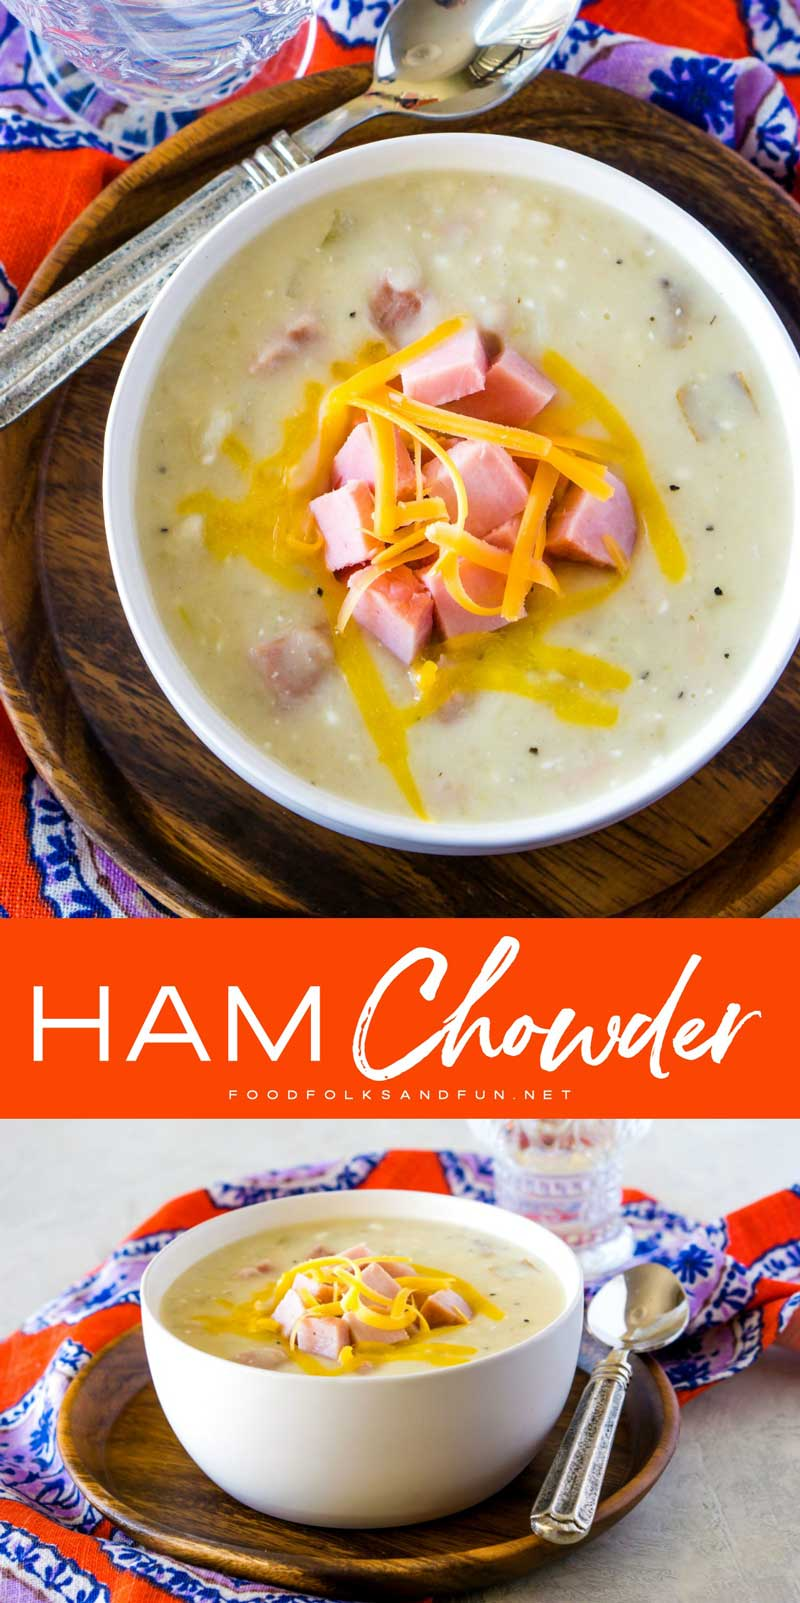 This Slow Cooker Ham Chowder is creamy, cheesy and so easy to make. It's a great way to turn leftover ham into a comforting weeknight dinner!  #dinner #ham #hamrecipe #leftoverham #easydinner #slowcooker #crockpot #Slowcookerrecipe #crockpotrecipe #foodfolksandfun via @foodfolksandfun